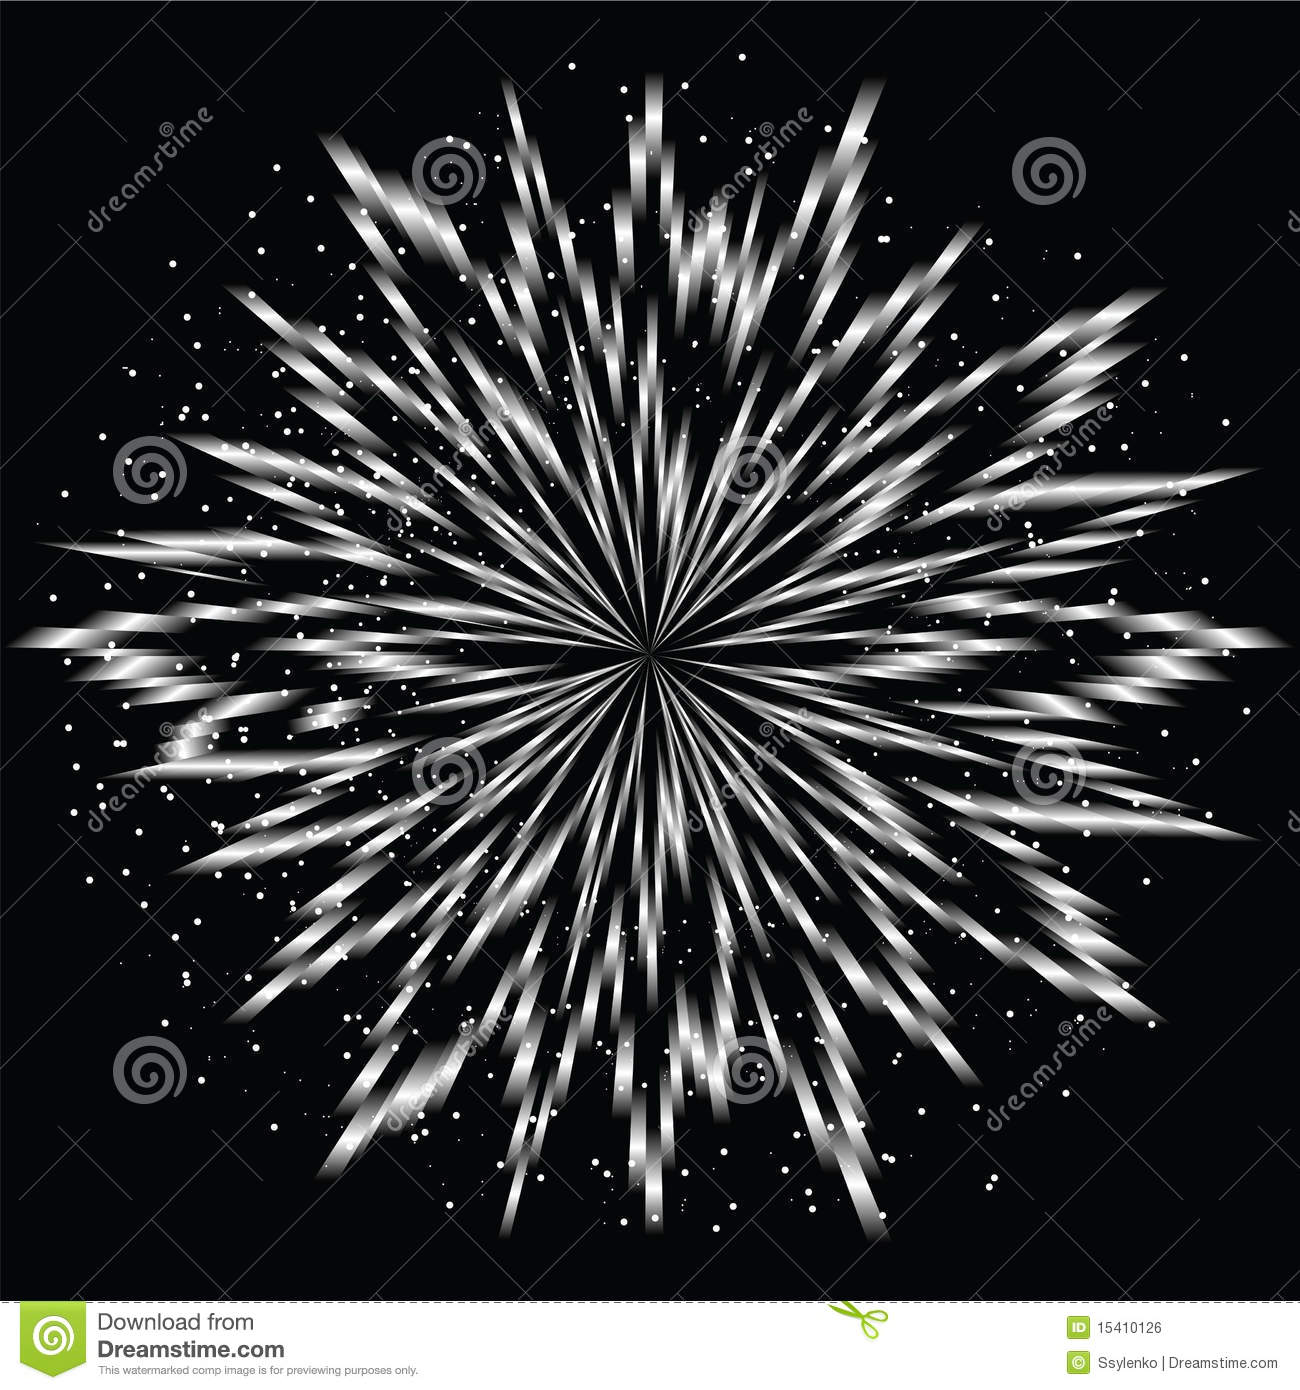 White Flower Burst Royalty Free Stock Image   Image  15410126